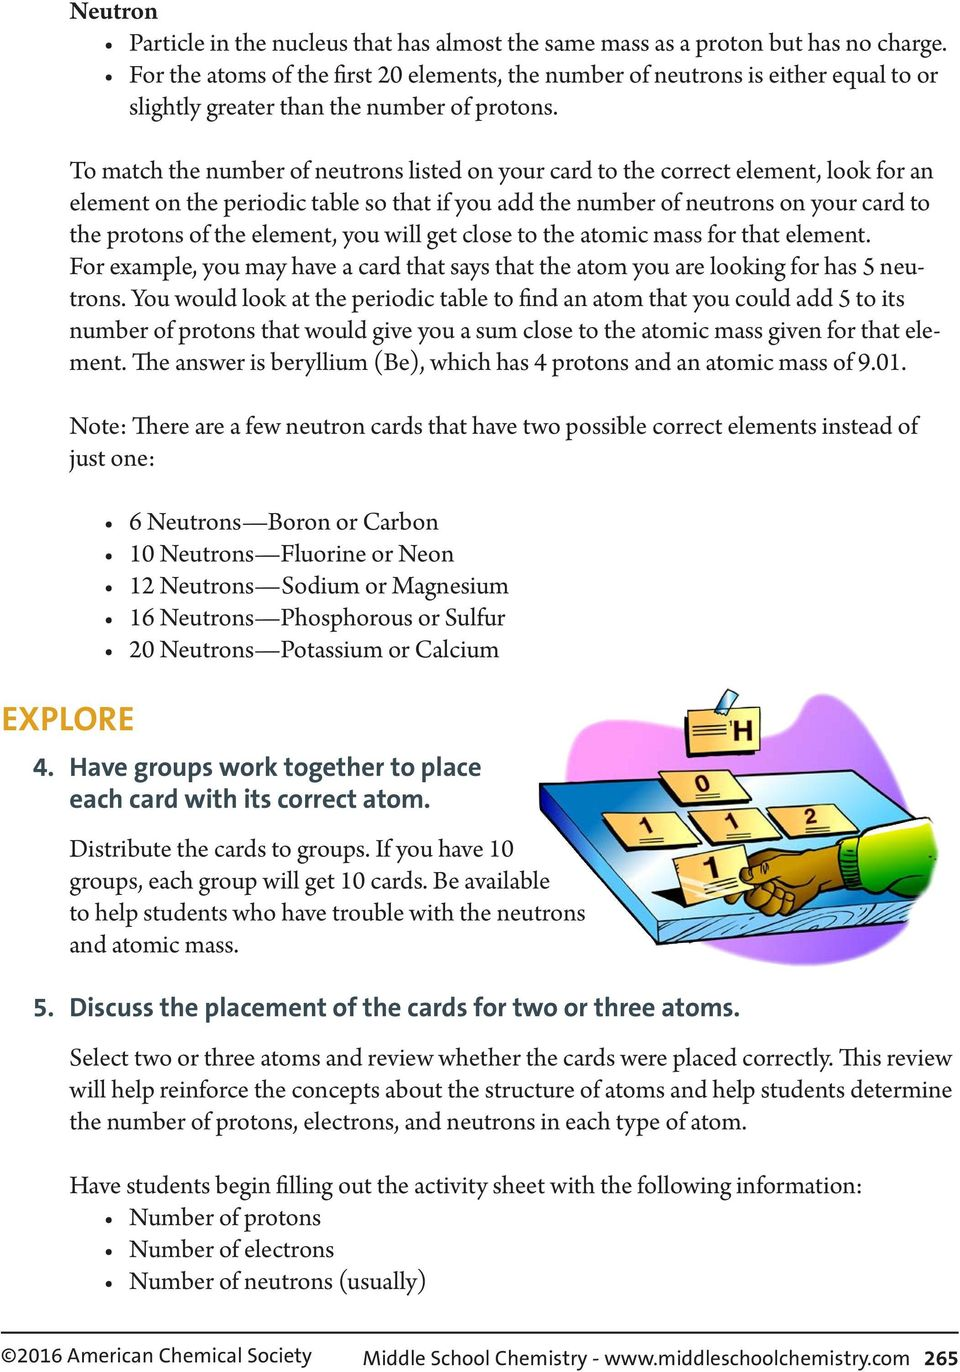 Chapter 4, Lesson 2: The Periodic Table - PDF